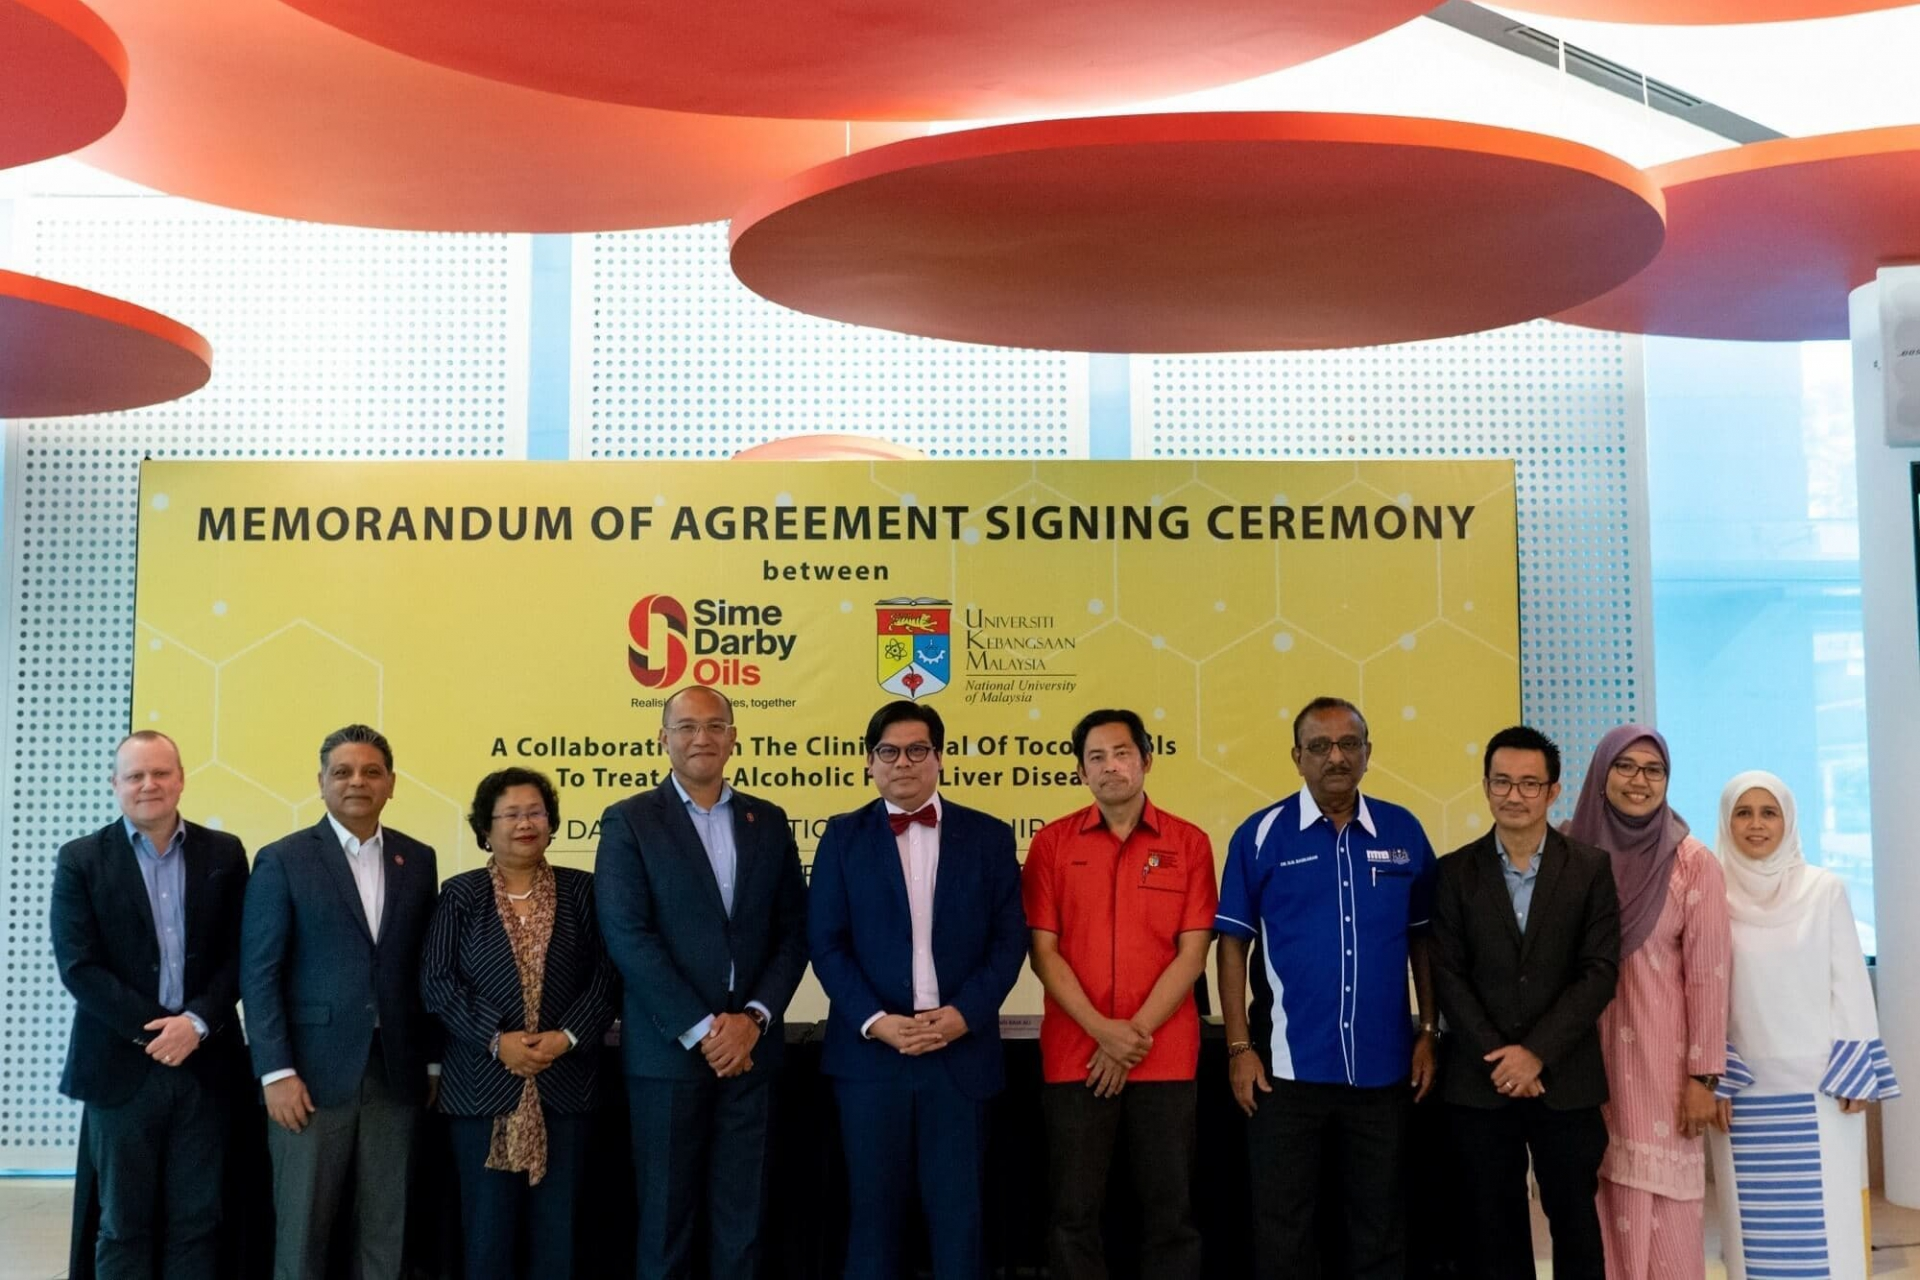 Sime-darby-oils-partnered-with-ukm